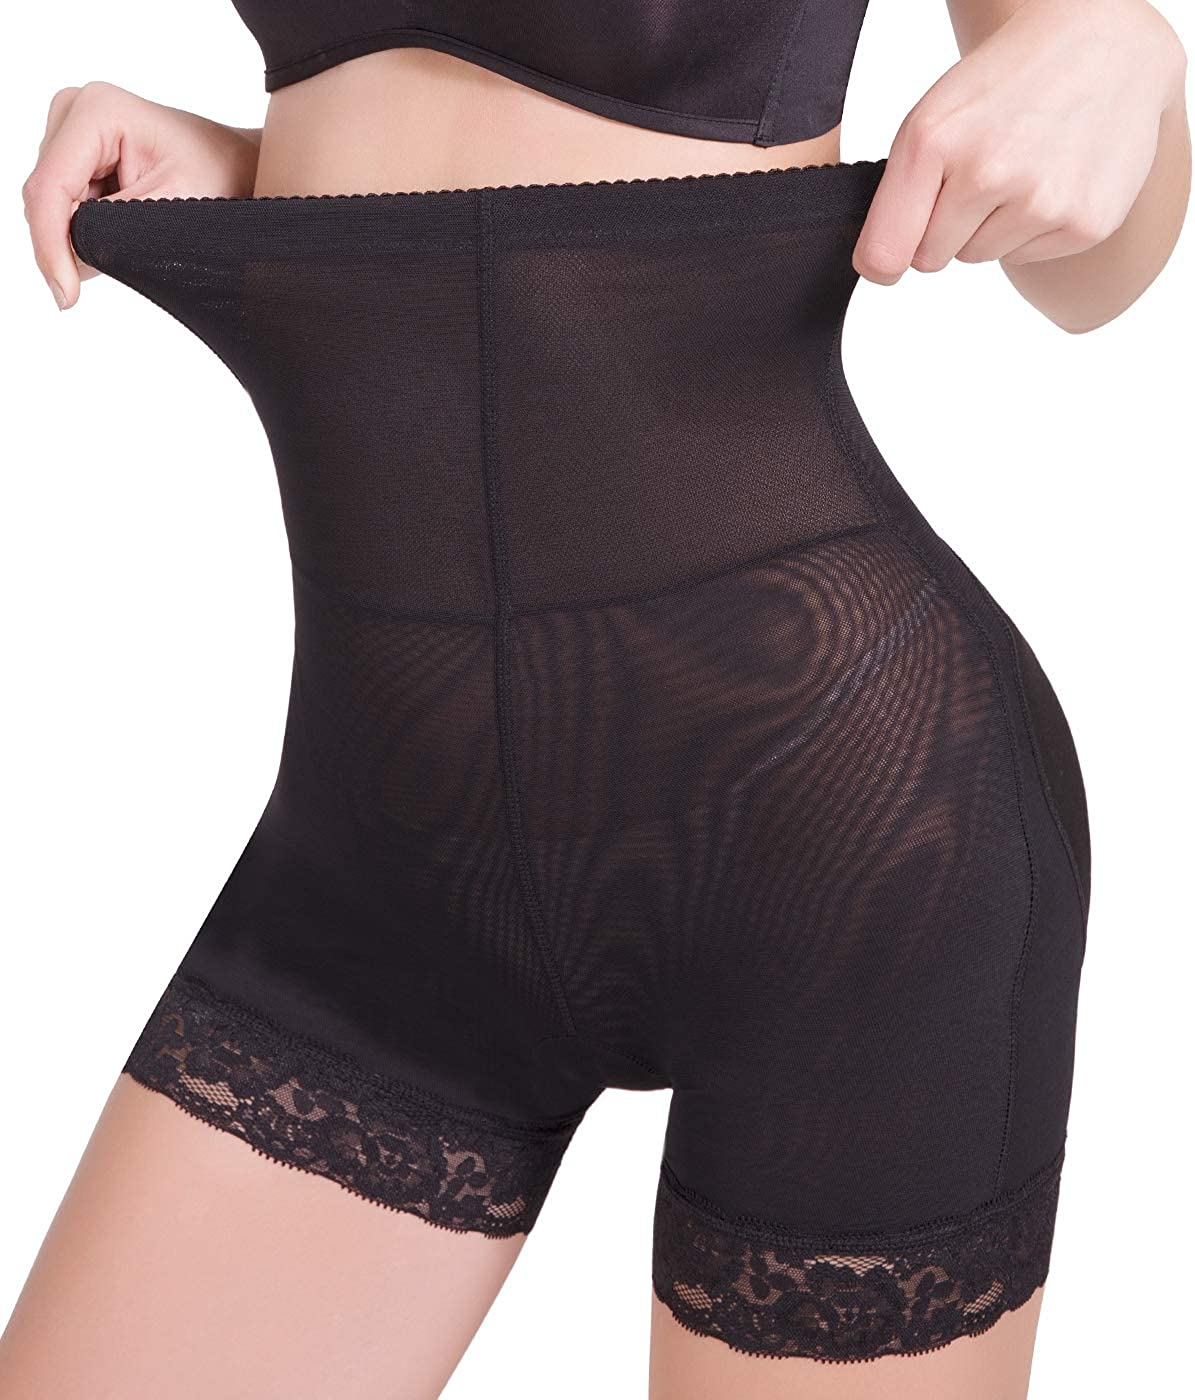 COMFREE Shaping Knickers for Women Control Brief Hip Enhancer Butt Lifter Shapewear Slimming Pants with Pad Firm Control Shaping Pants Butt Lifter Pants Tummy Control Knickers Black Beige